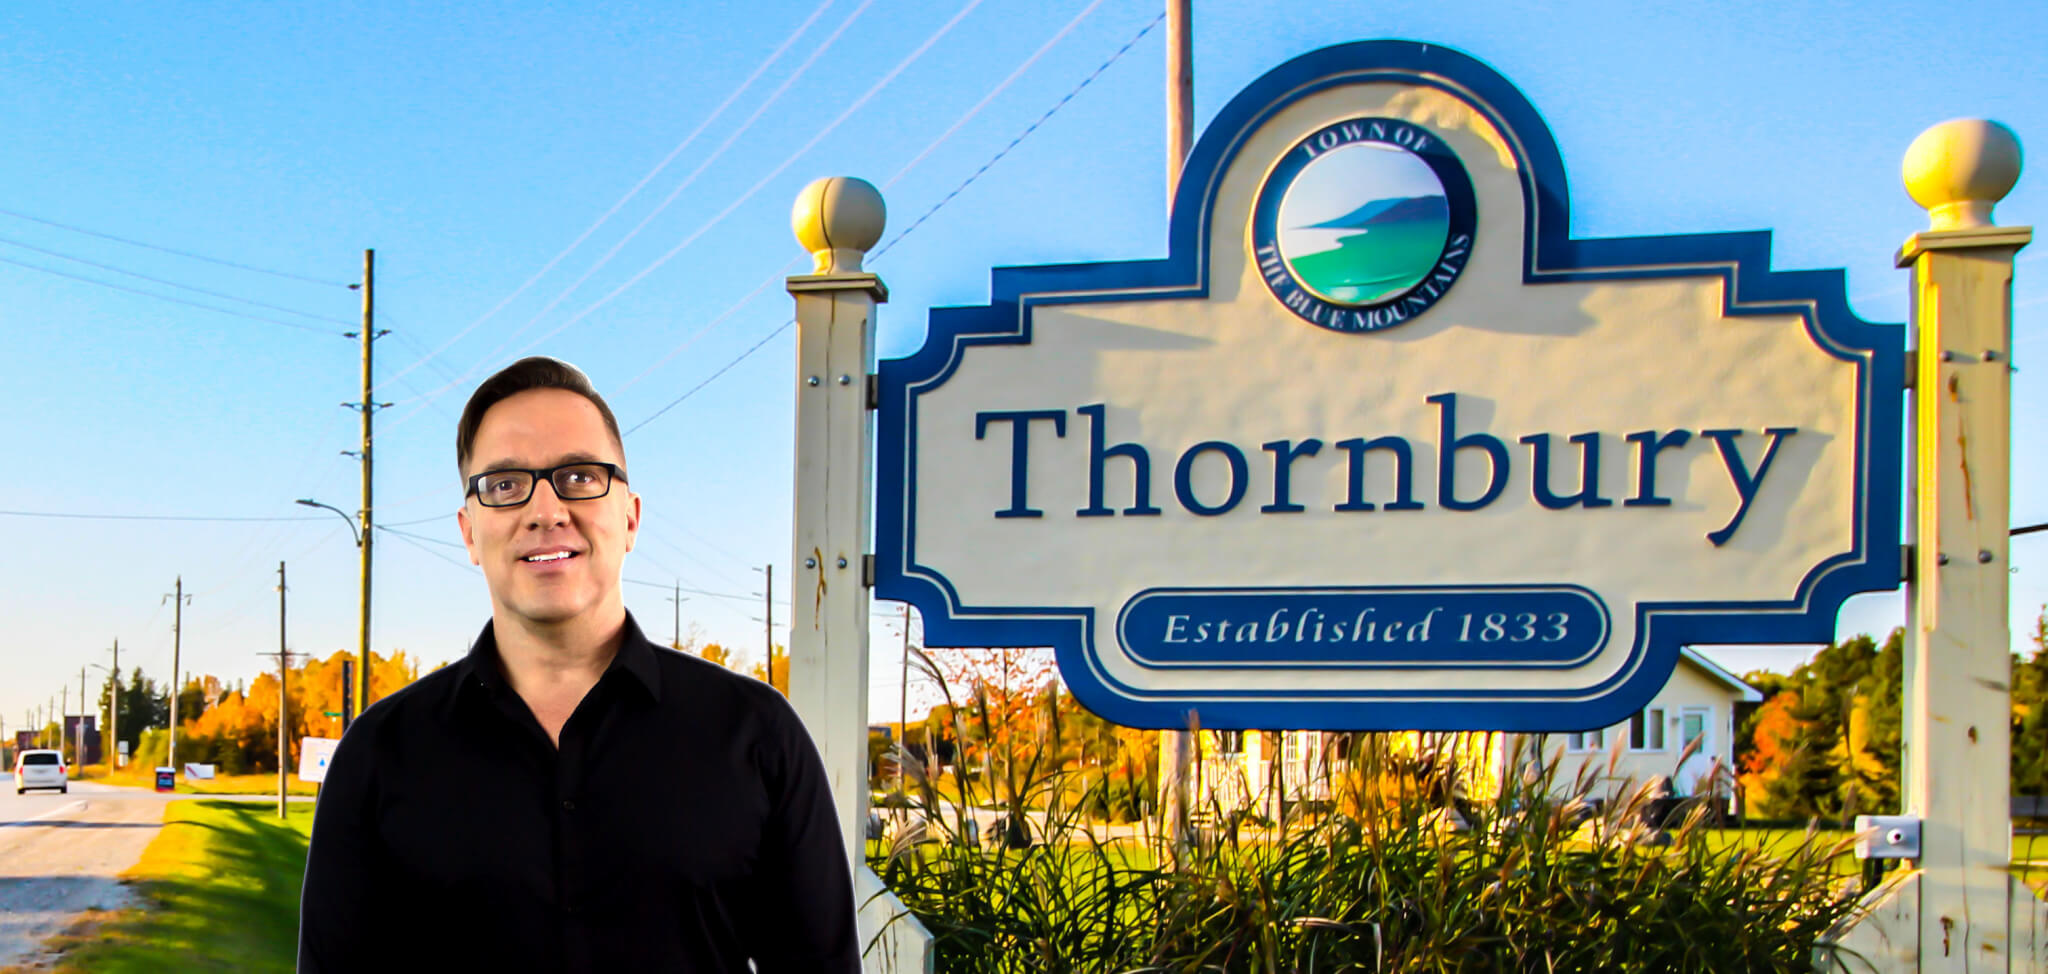 THORBURY web design